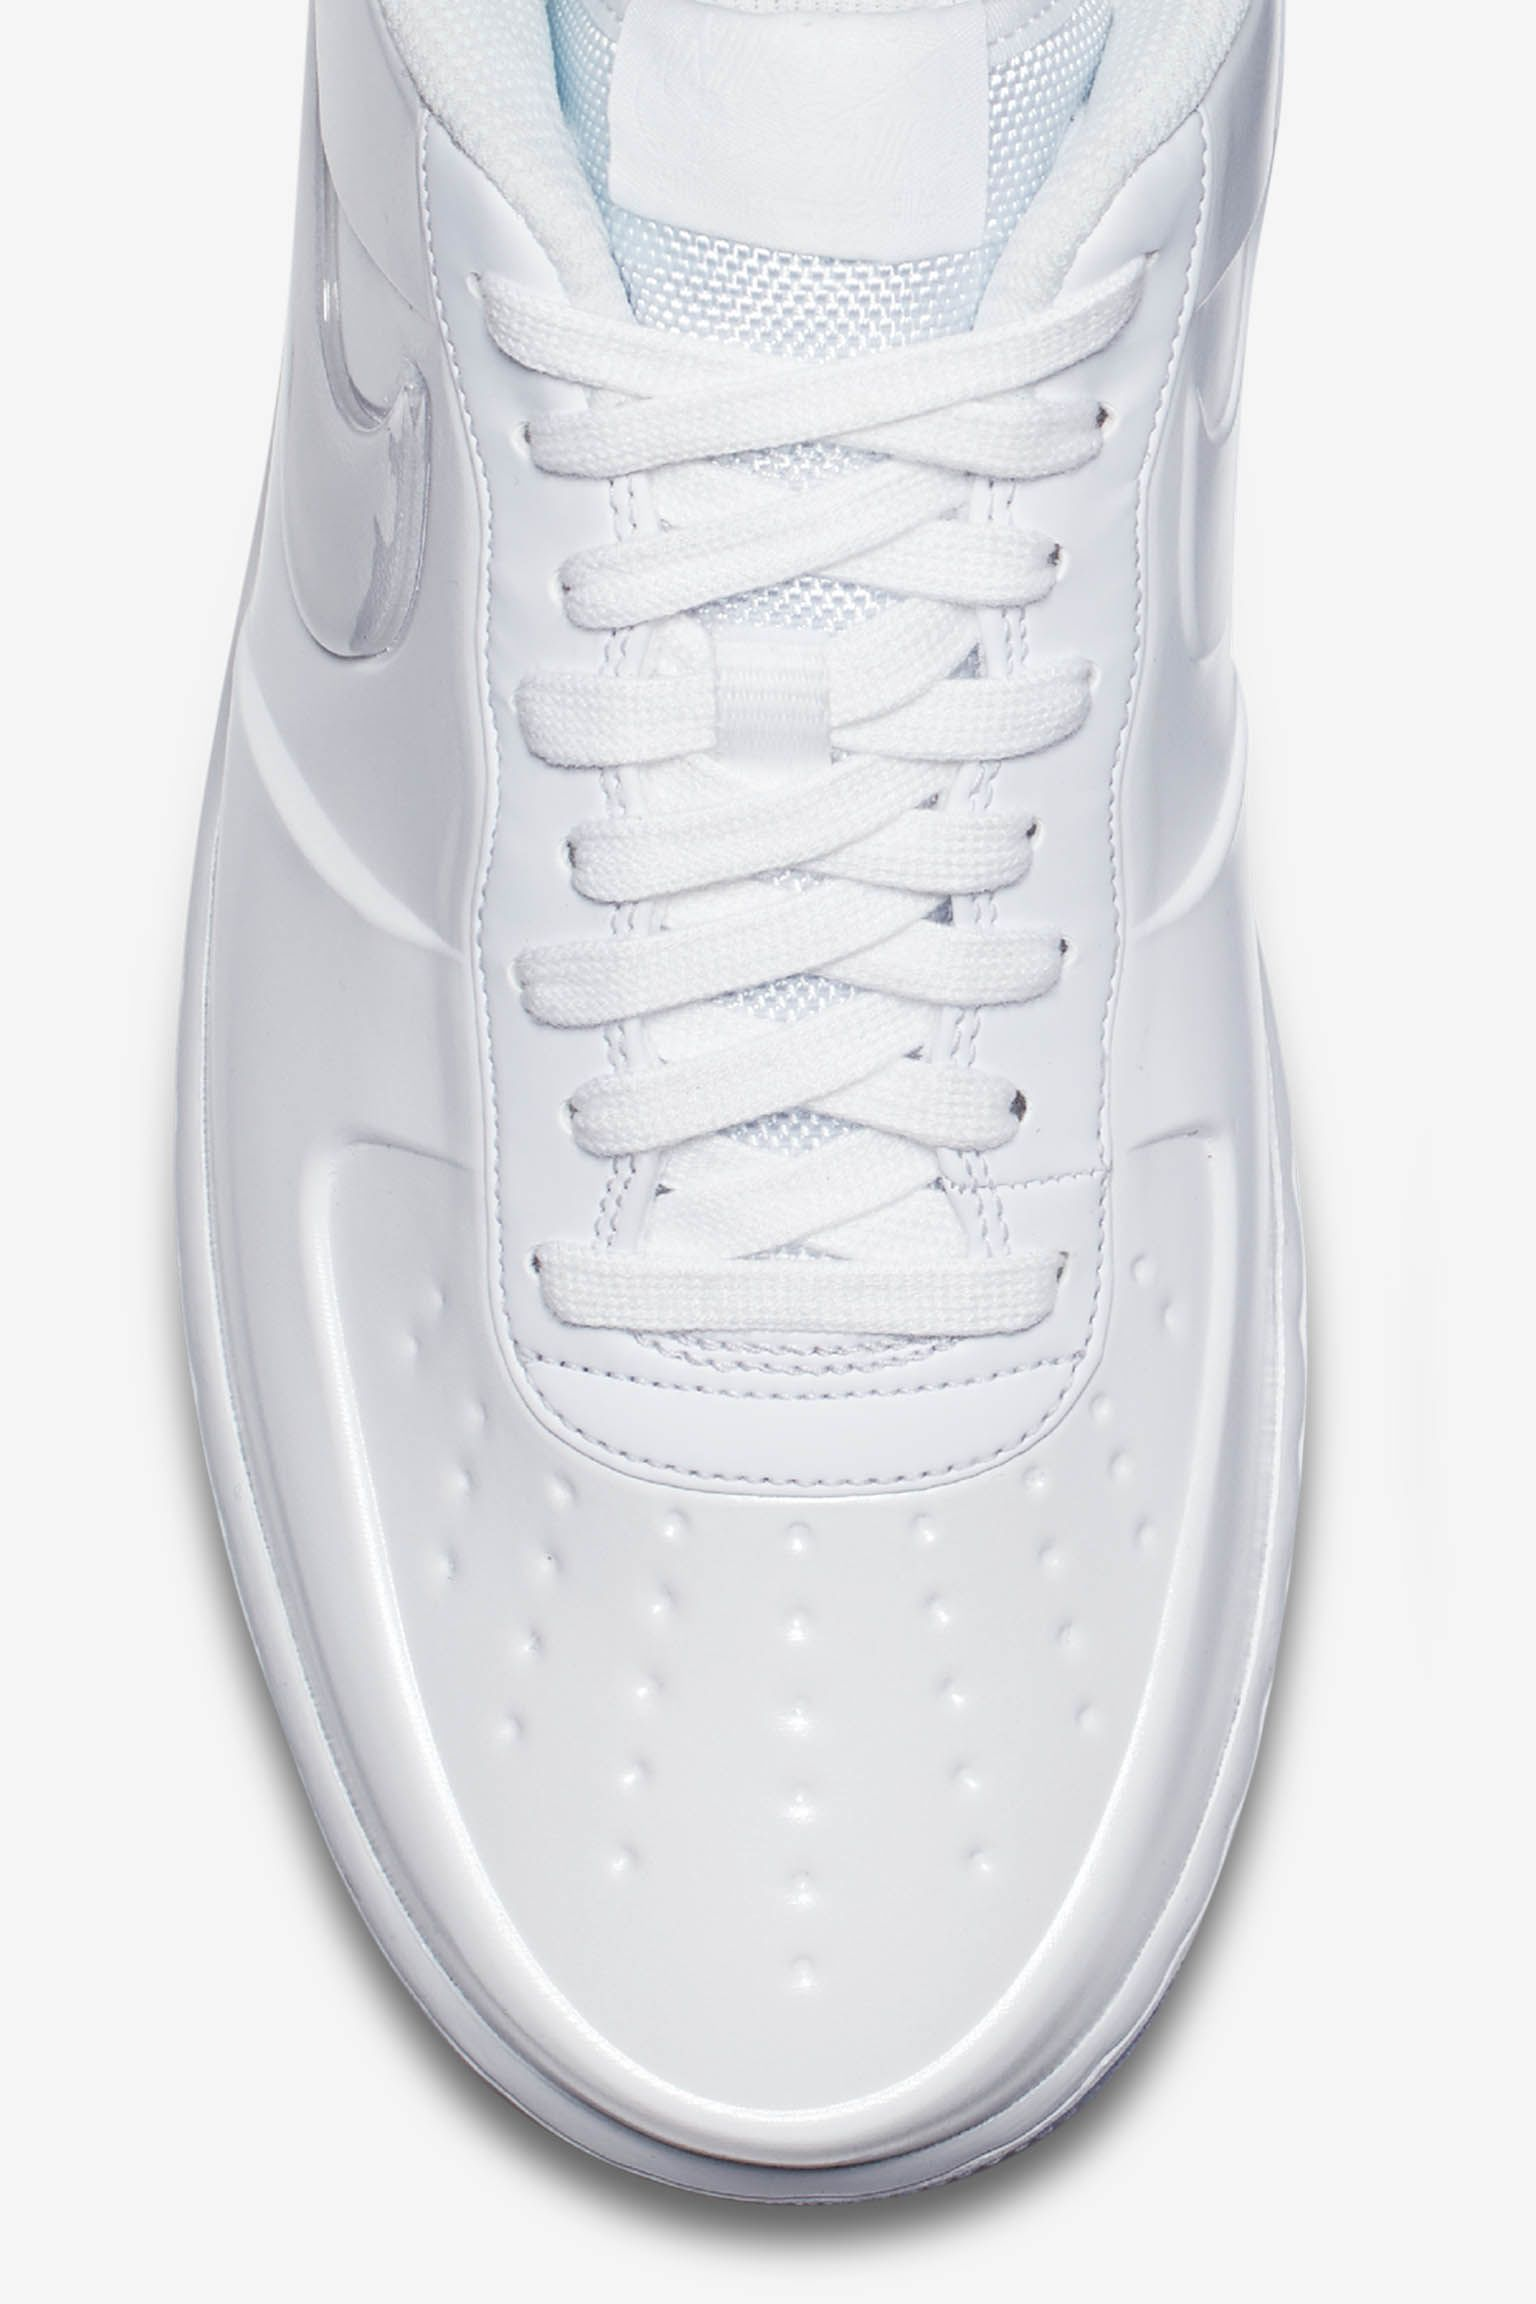 Nike Air Force 1 Foamposite Pro Cup 'Triple White' Release Date